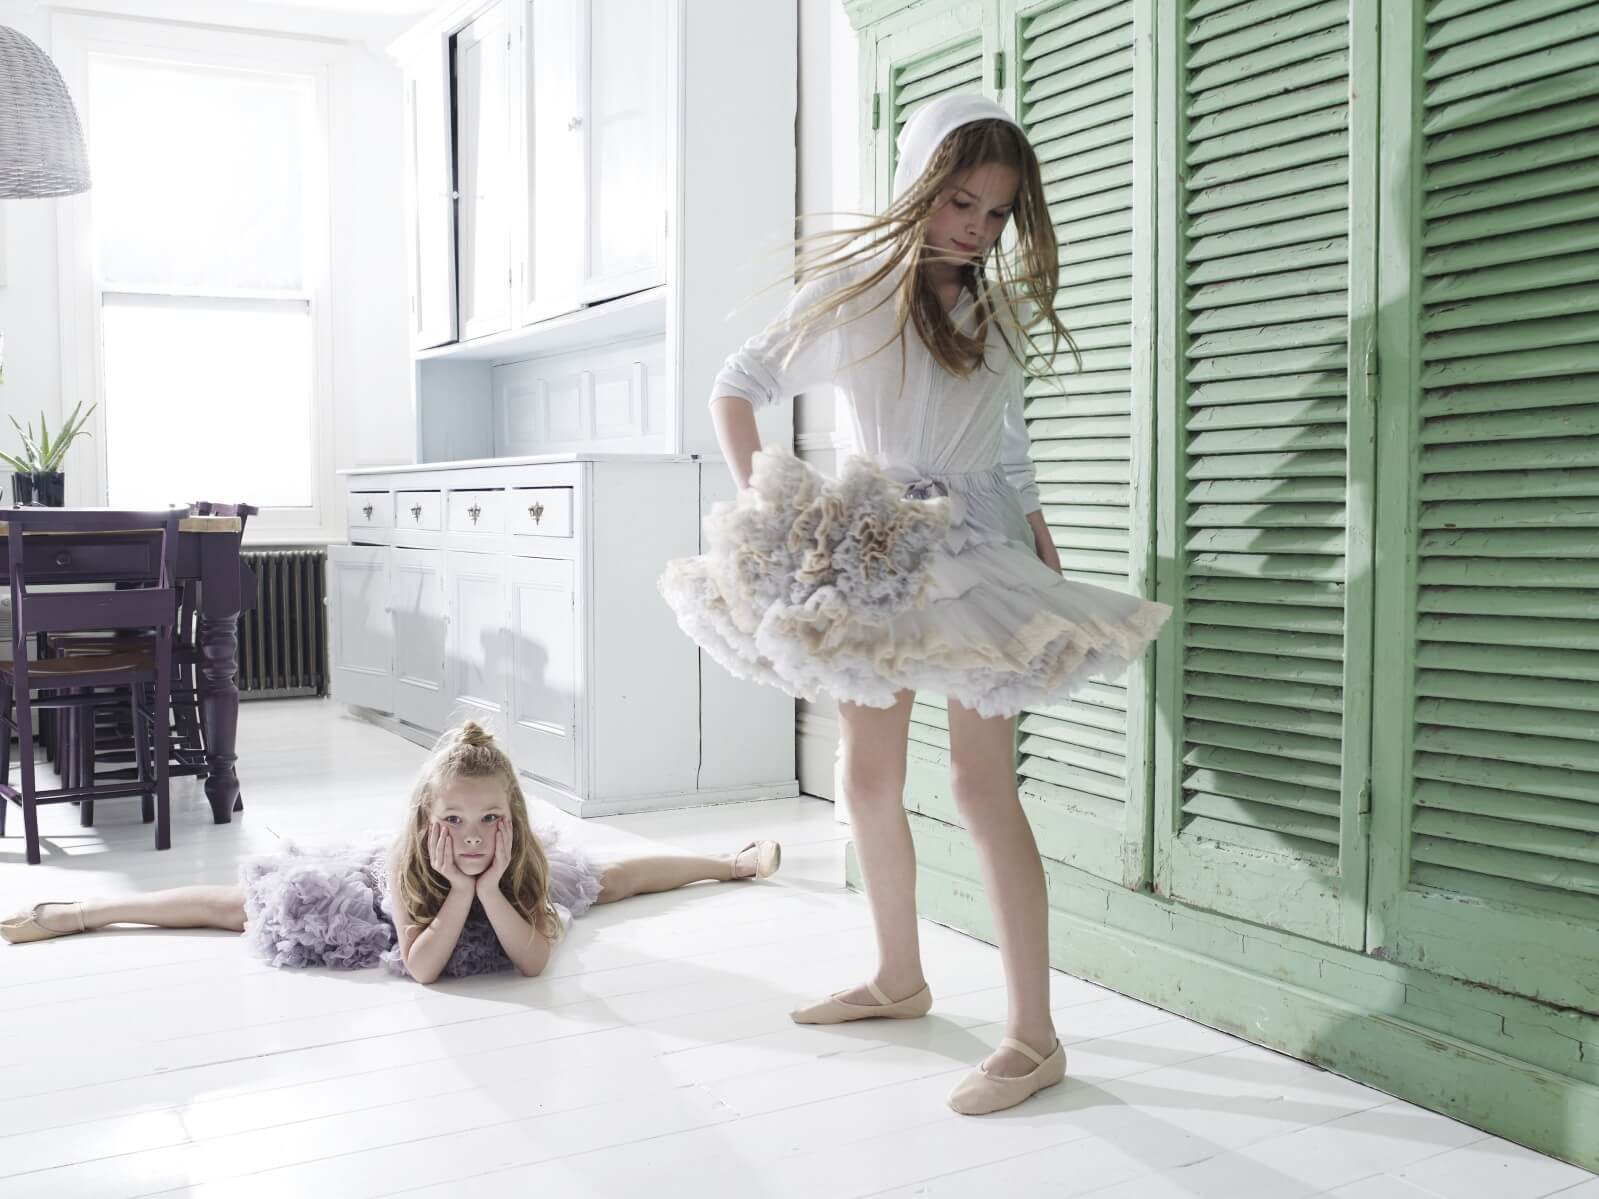 Poppy wears lilac frilled tutu dress, from £56, 0-13Y, Angel's Face at Childrensalon. Freya wears silver zipped hoodie, £57.50, 4-14Y, Eleven Paris. Grey and ivory chiffon tutu skirt, from £36, 0-13Y, Angel's Face at Childrensalon.